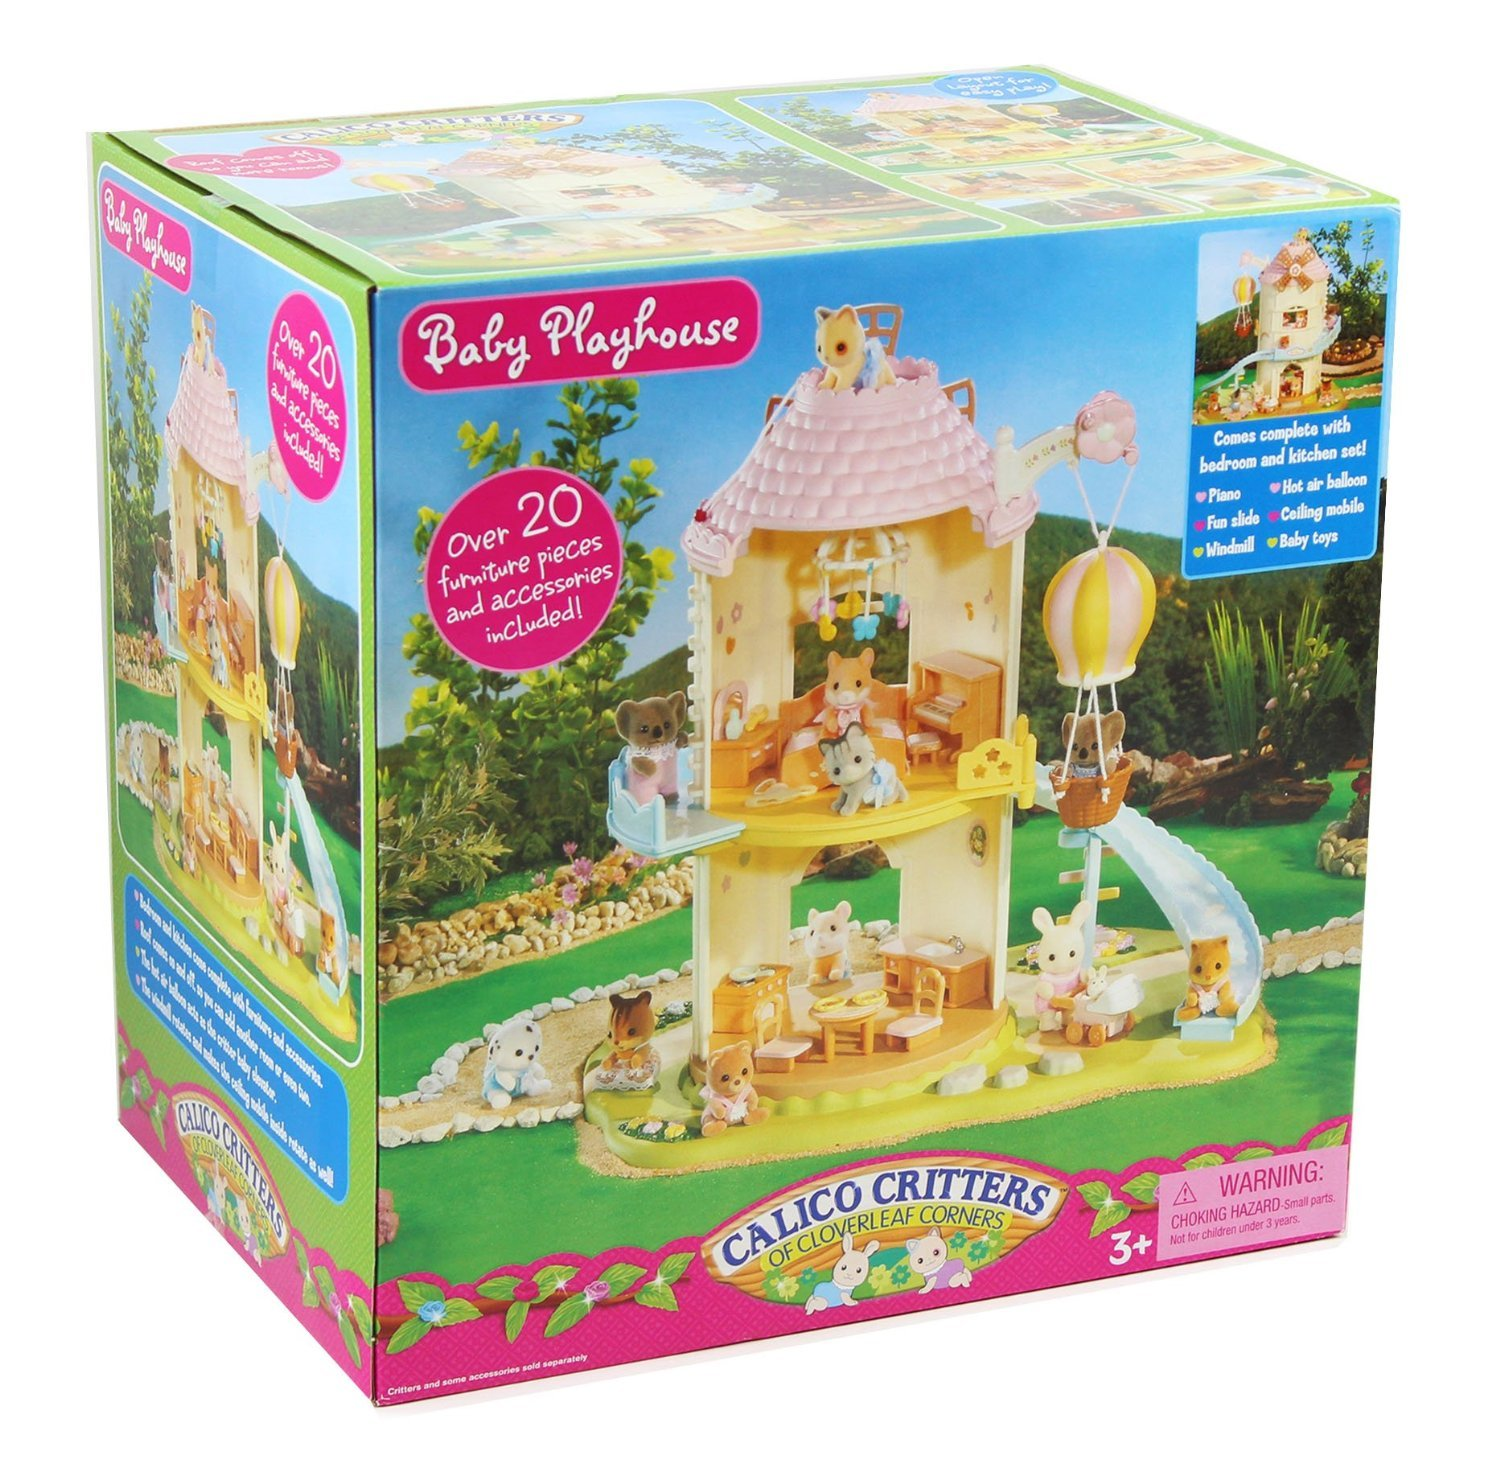 Amazon.com: Calico Critters: Baby Playhouse Windmill: Toys & Games